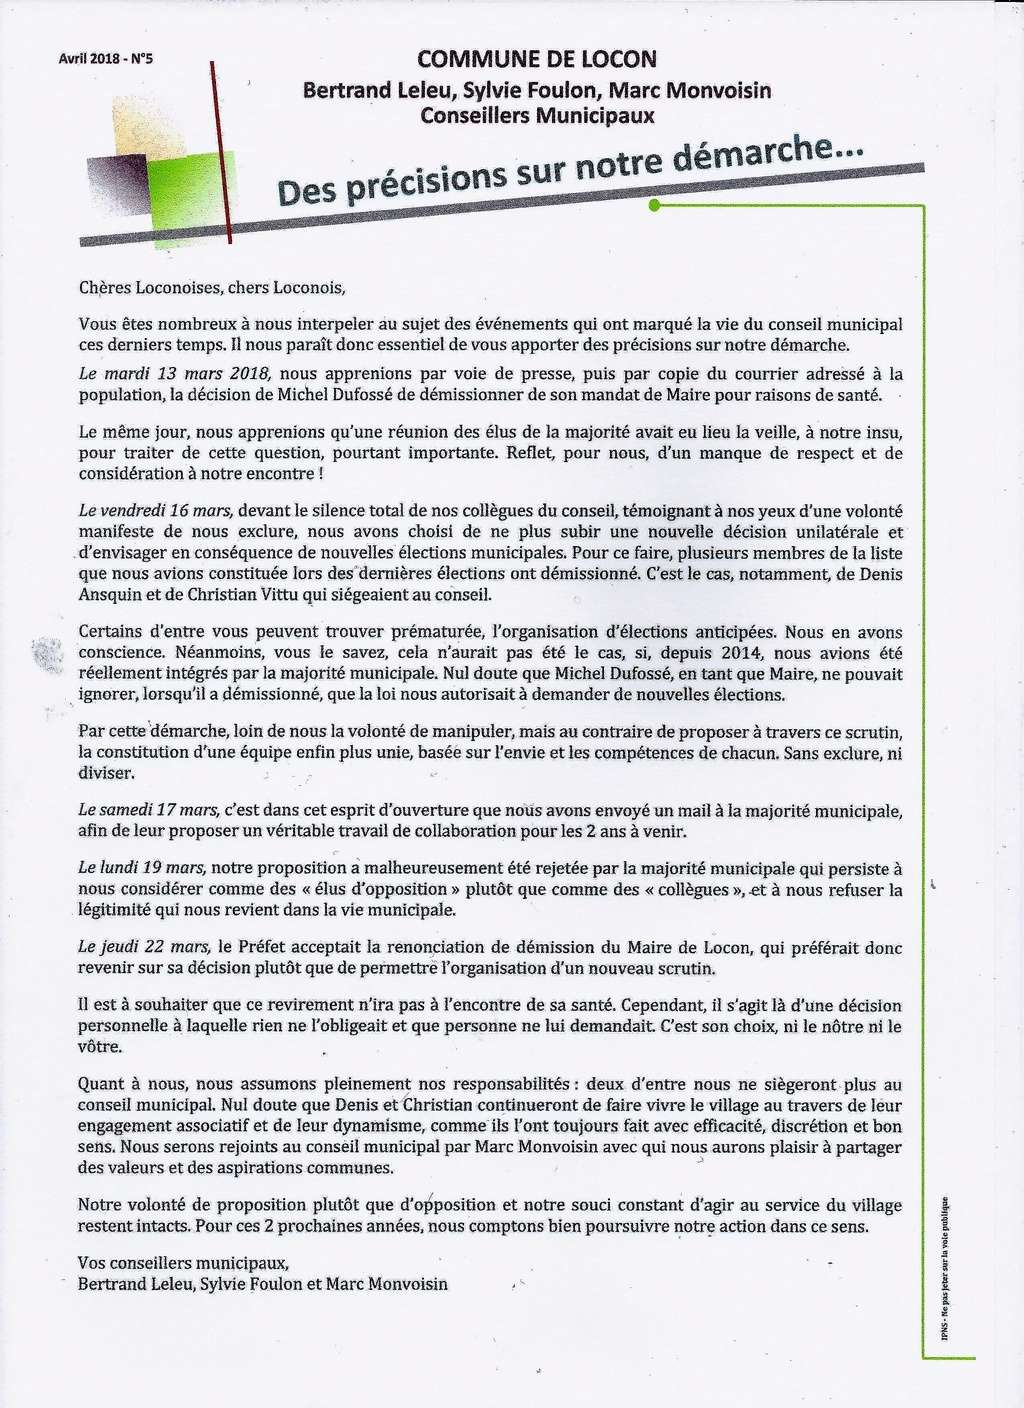 VIE ET ACTUALITES A LOCON - Page 2 Tract_11